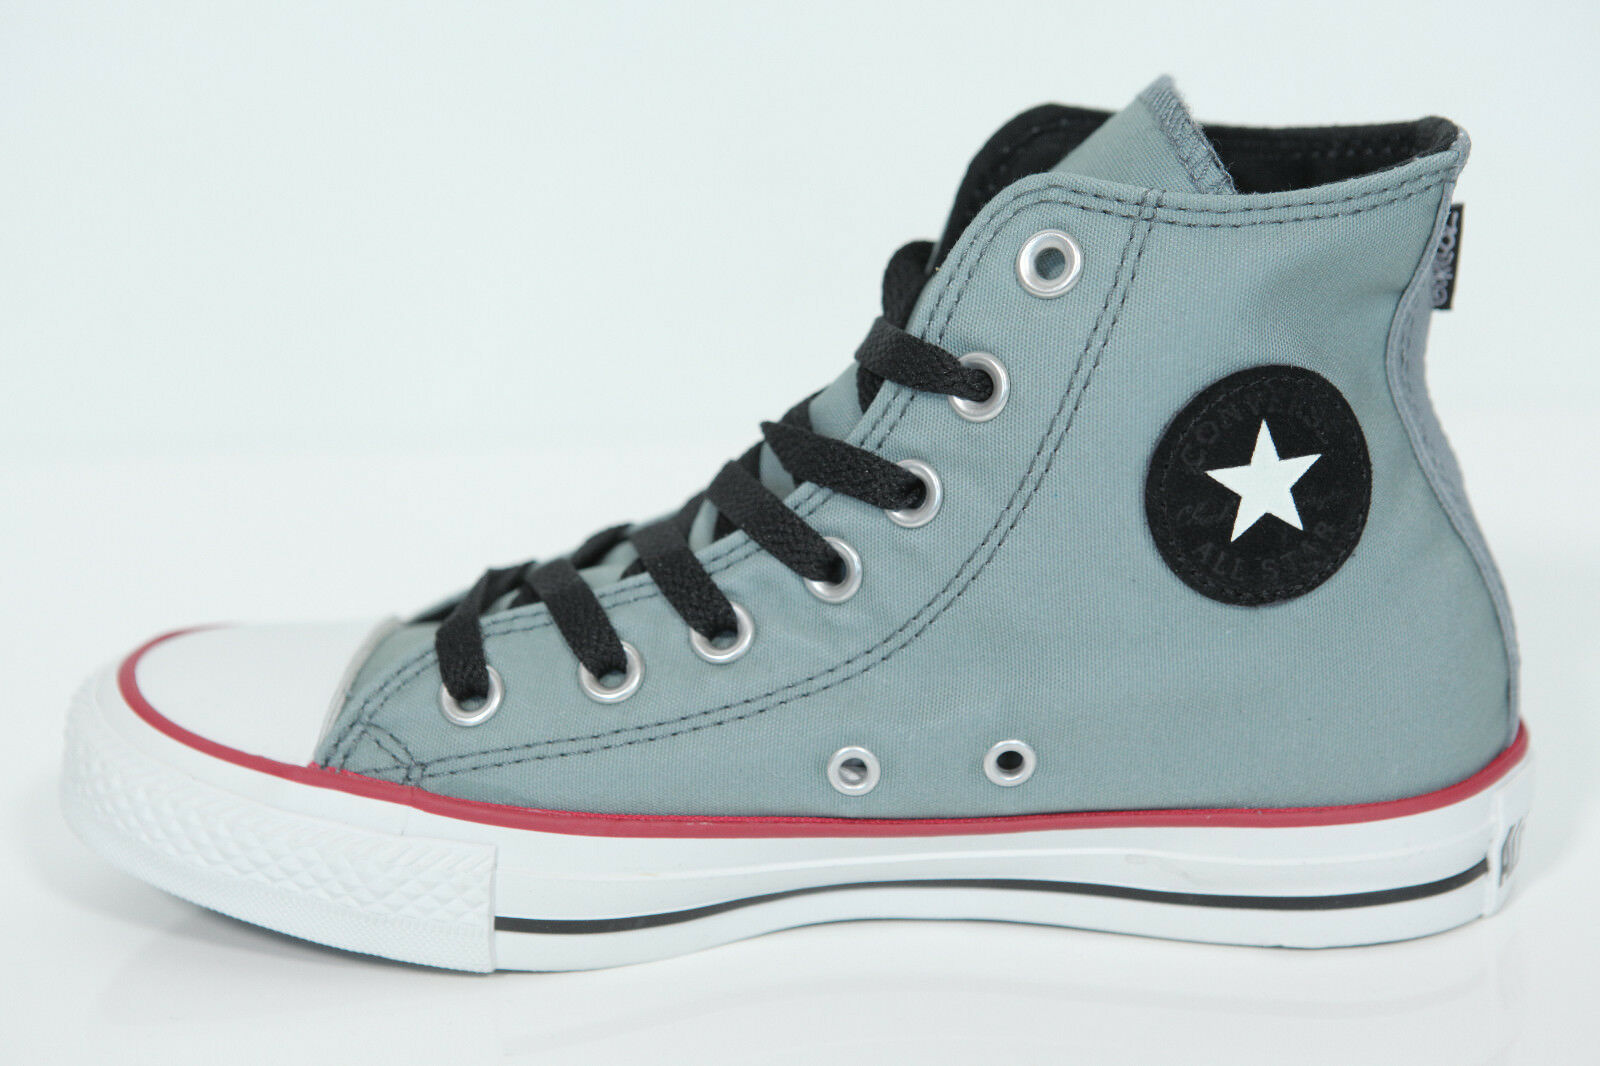 Nouveau All Star Converse Chuck Basket Chaussures Culte 132177 C CT HI Lead Gorillaz